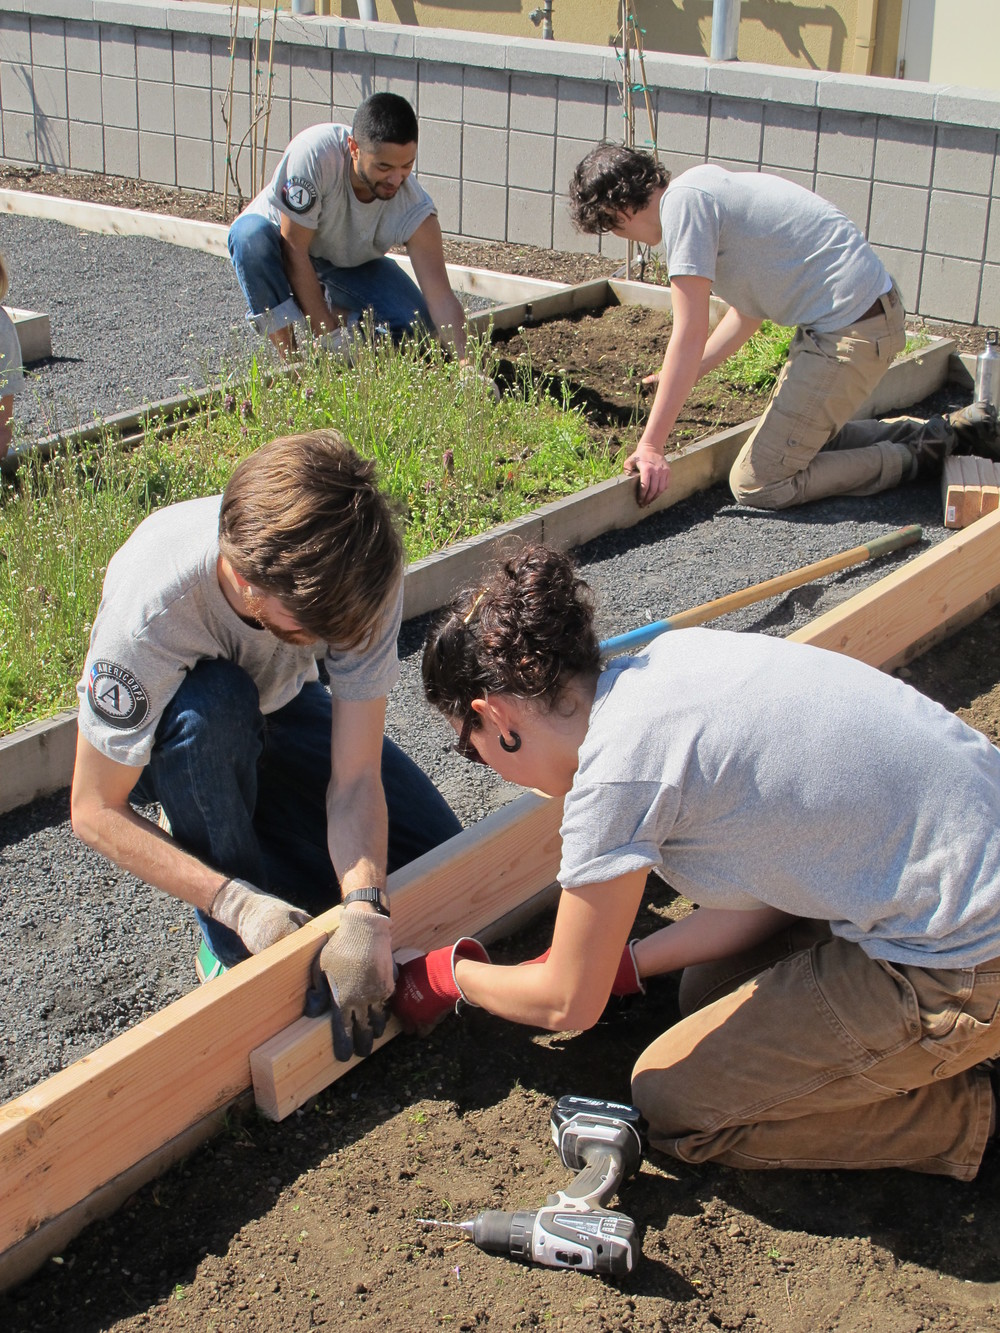 Building and weeding garden bedsat Virginia Garcia Memorial Health Center